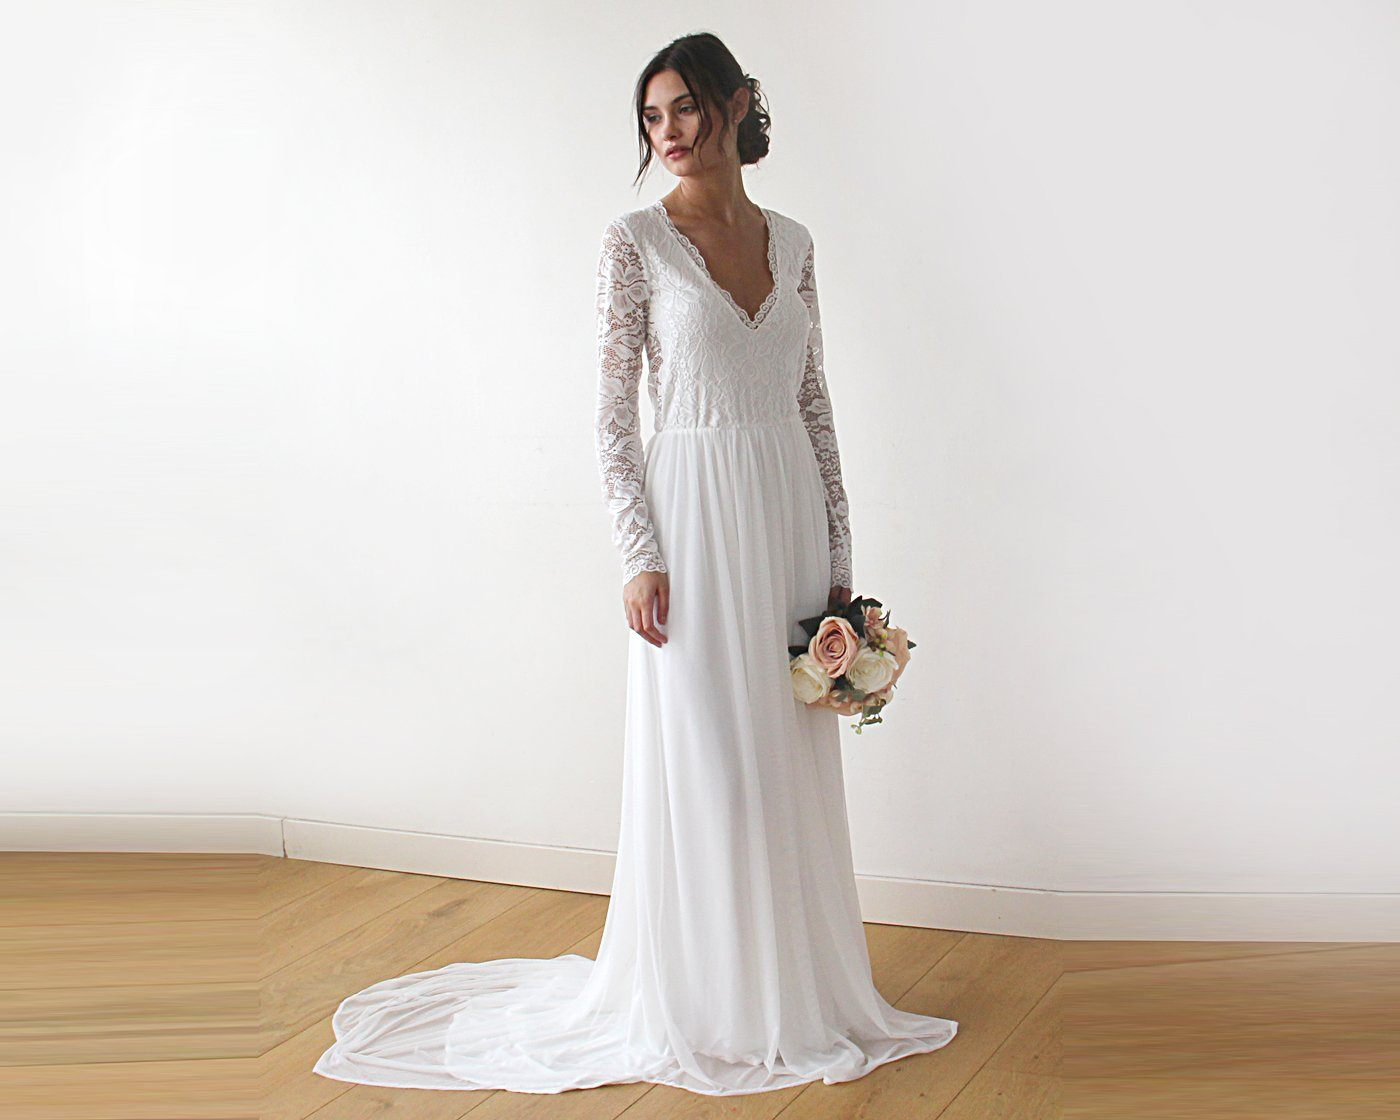 Boho Style wedding dress, Lace V neck bridal gown, Lace and Chiffon Dress, Lightweight wedding dress, Comfortable wedding dress 1187